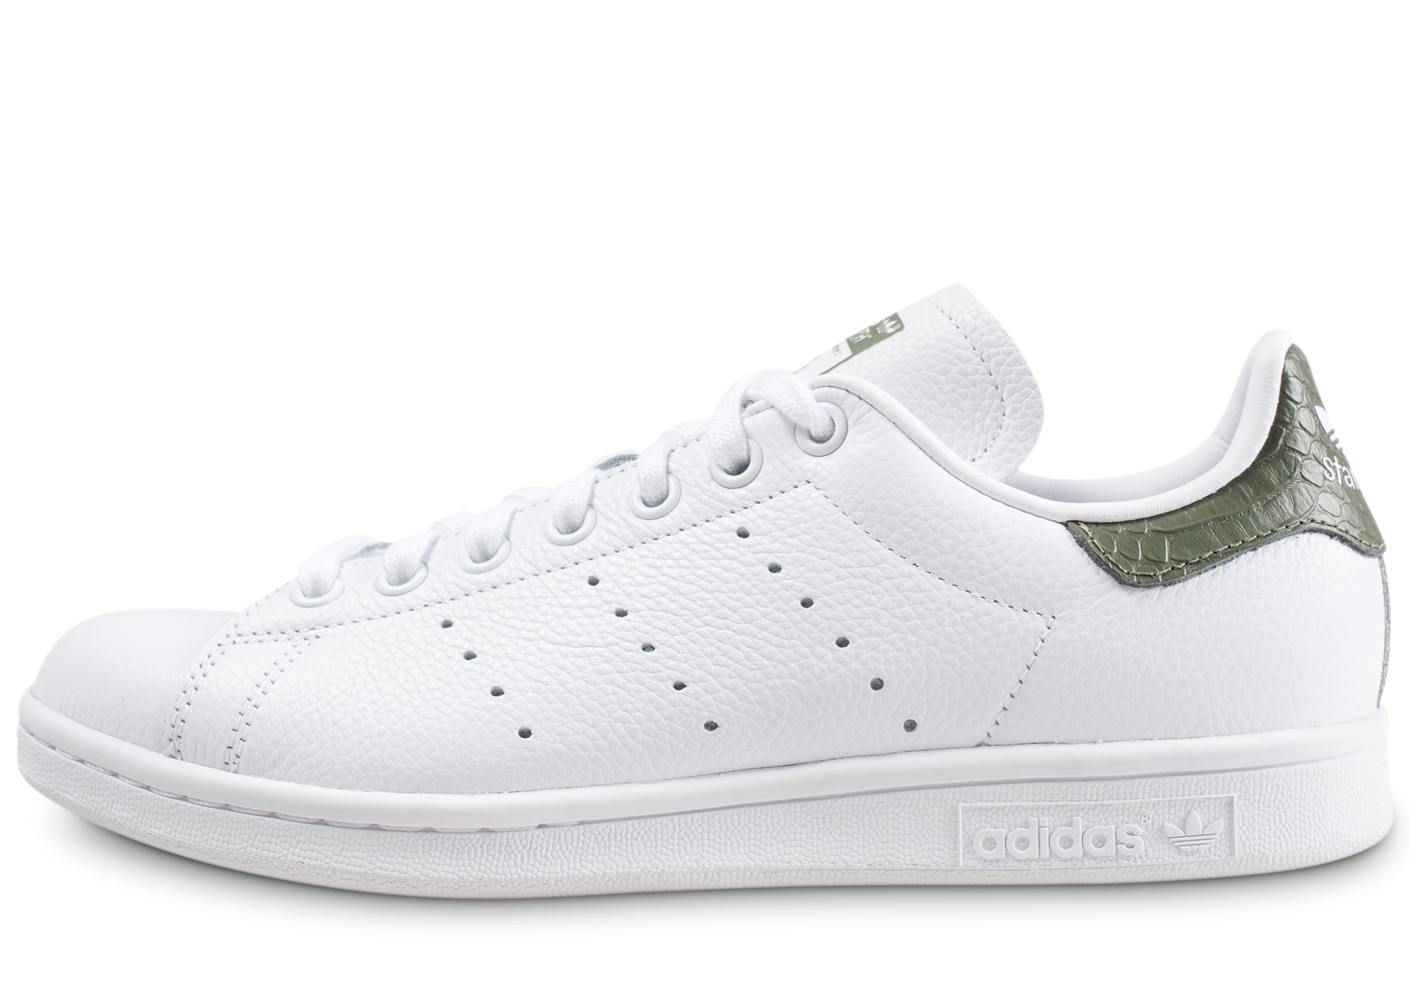 Soldes adidas 2019 | adidas stan smith homme vert pas cher